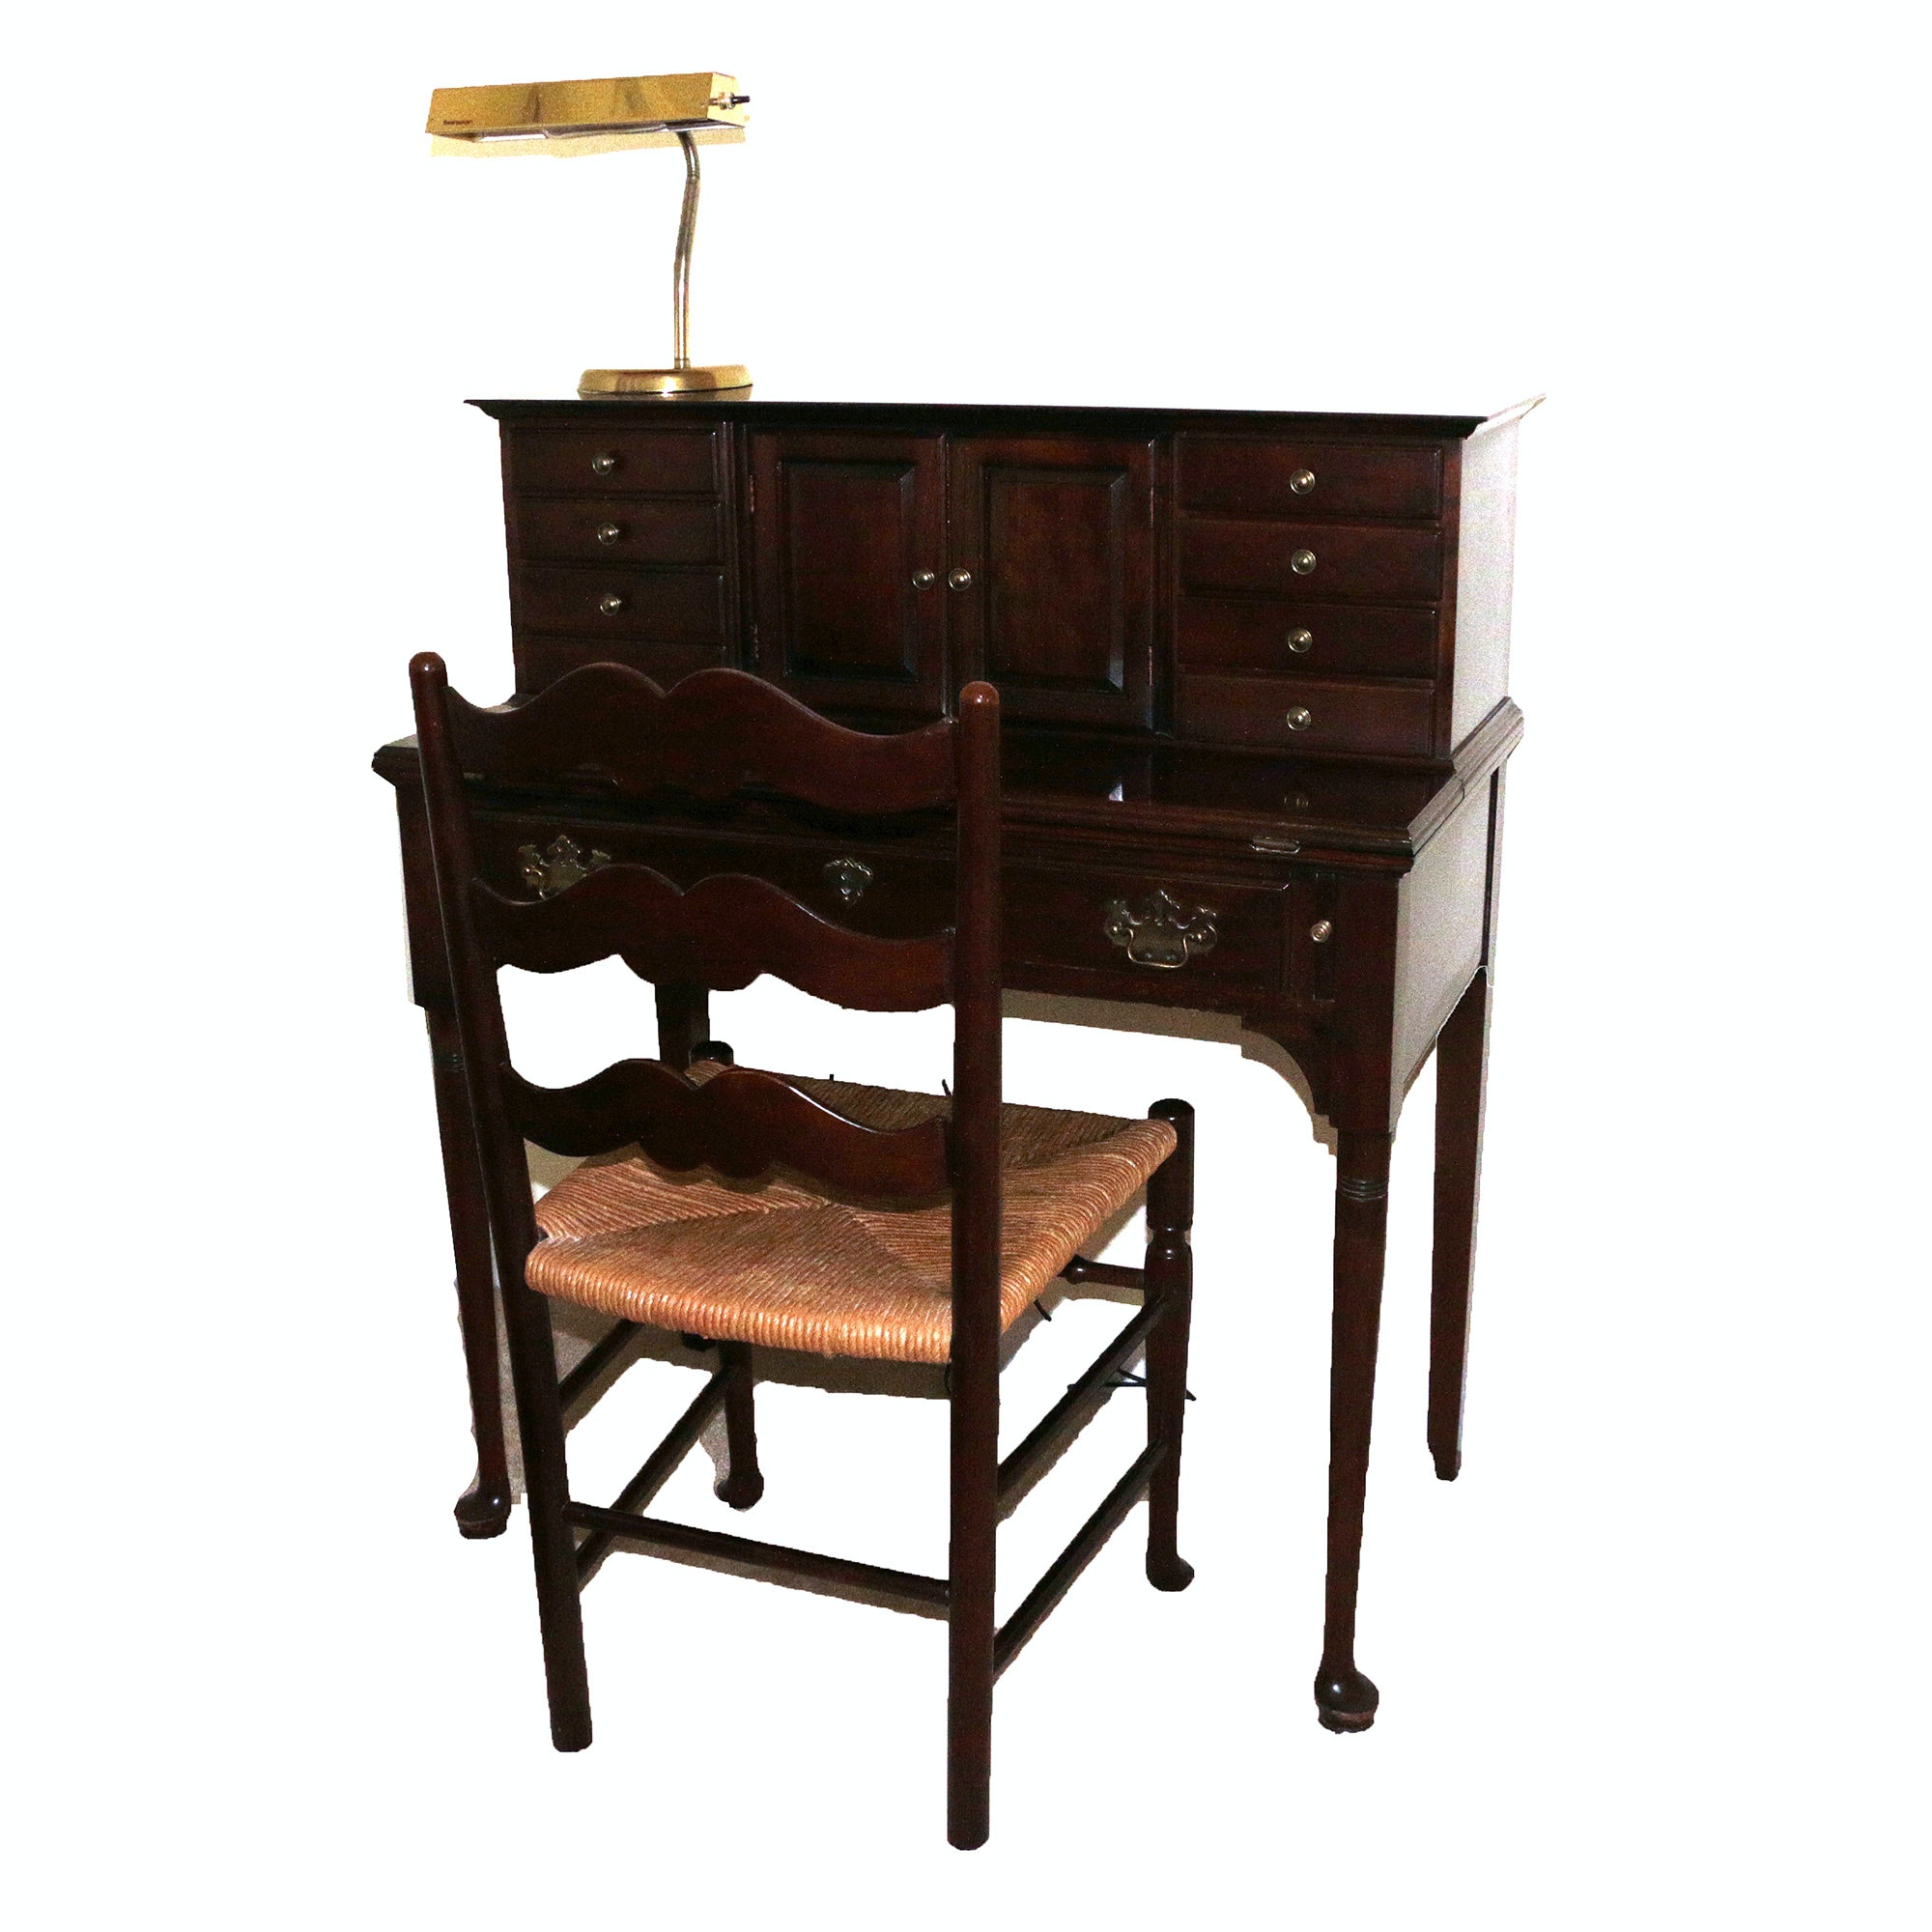 Pennsylvania House Queen Anne Style Writing Desk with Chair and Lamp